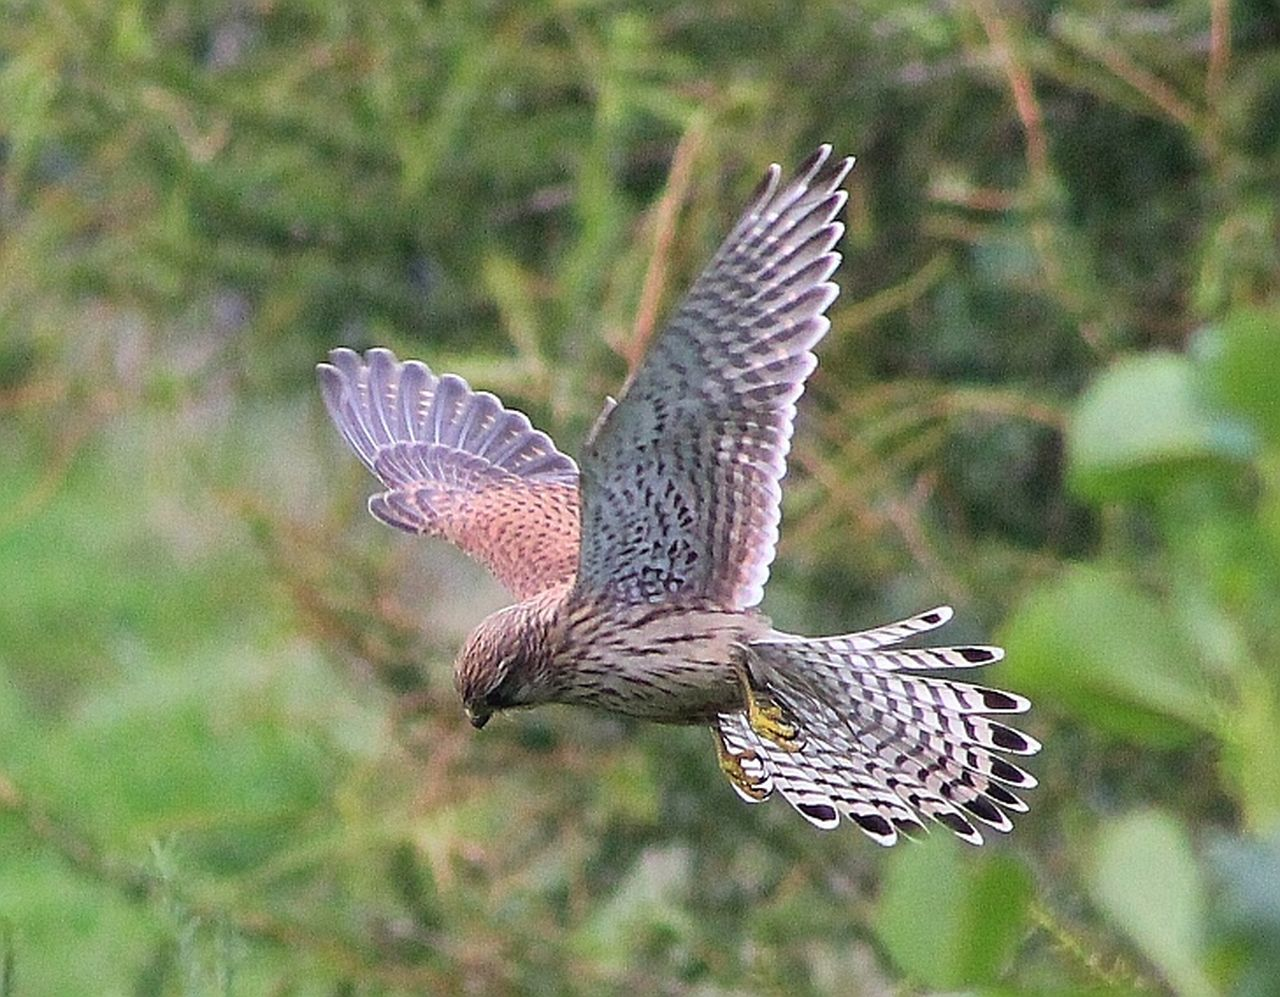 Unedited Photo Unedited Kestrel Top Of The Food Chain Taking Photos Check This Out Nature Birds Enjoying Life Cellphone Photography Fields